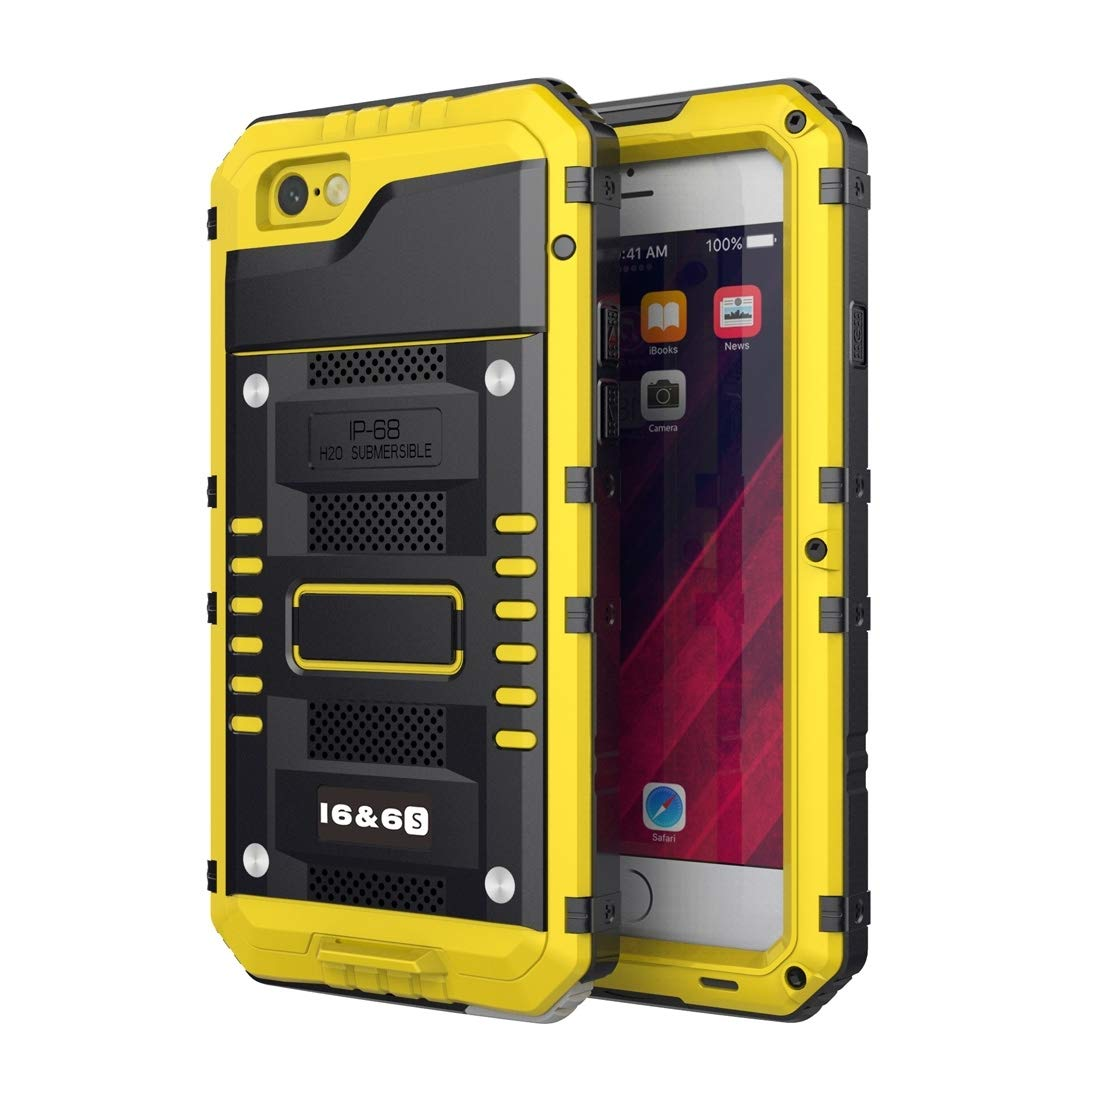 Durable Durable Waterproof Dustproof Shockproof Zinc Alloy + Silicone Case Compatible with iPhone 6 & 6s (Color : Yellow) by ZHENGGUIFANG-PHONE CASE